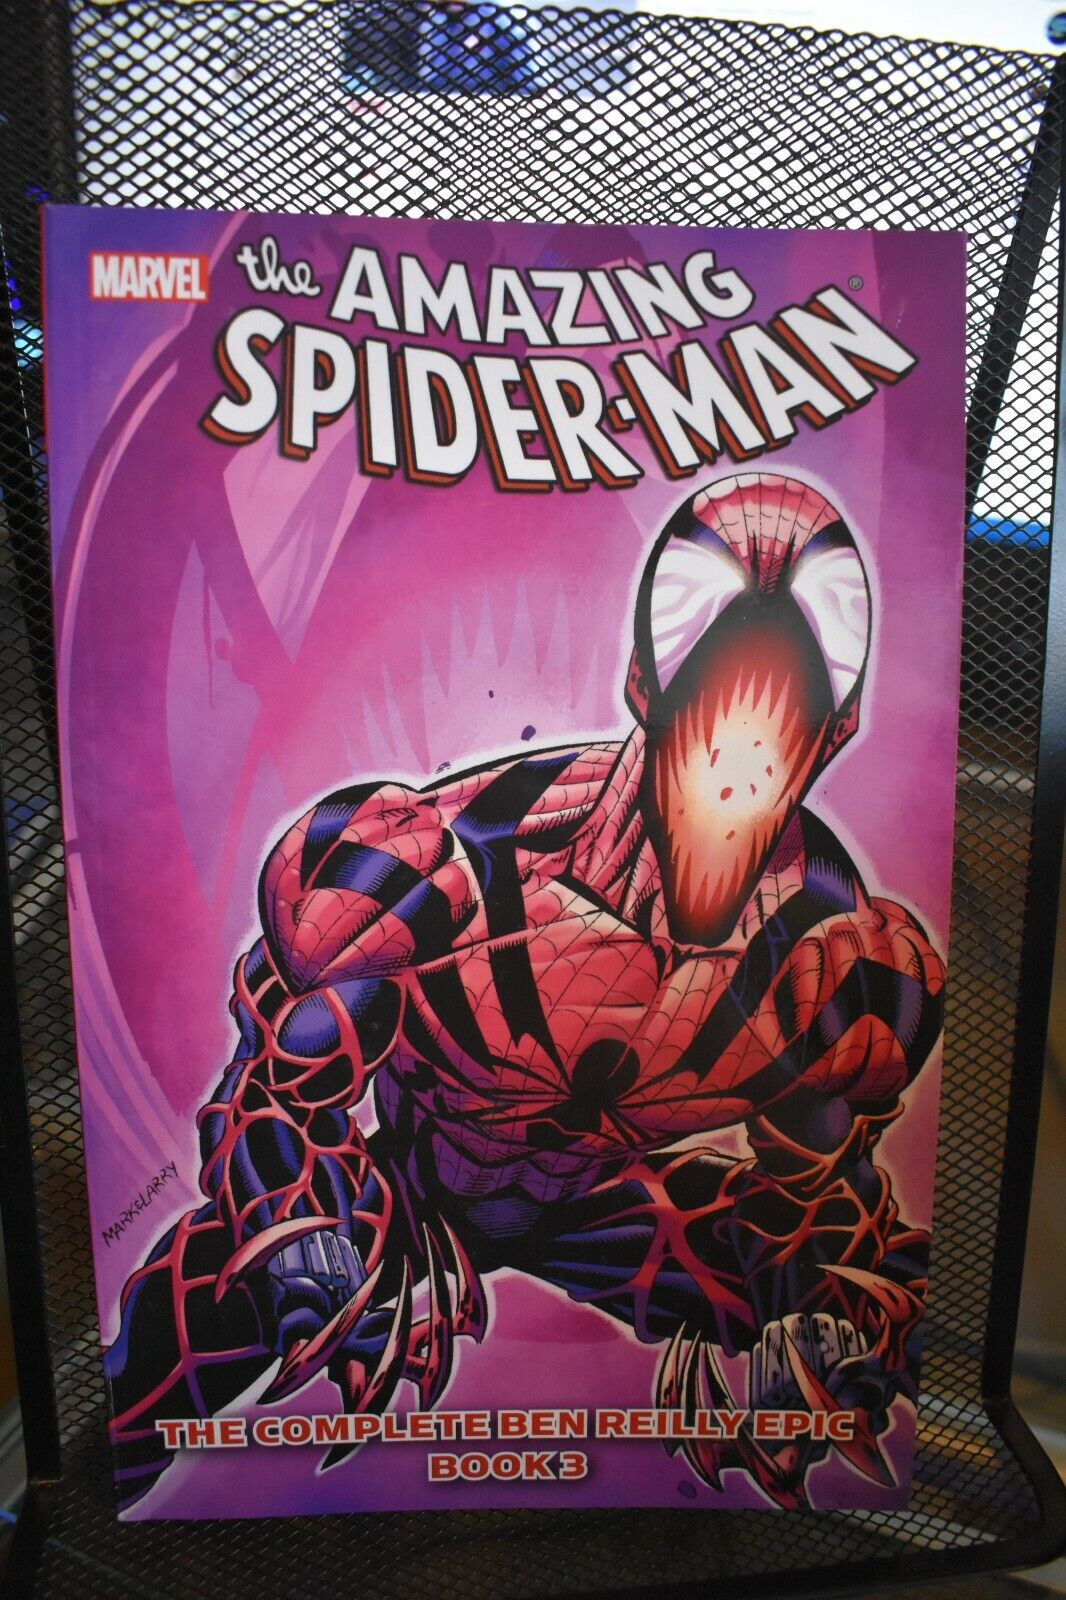 Amazing Spider-Man The Complete Ben Reilly Epic Volume 3 Marvel TPB NEW RARE OOP - $6.00